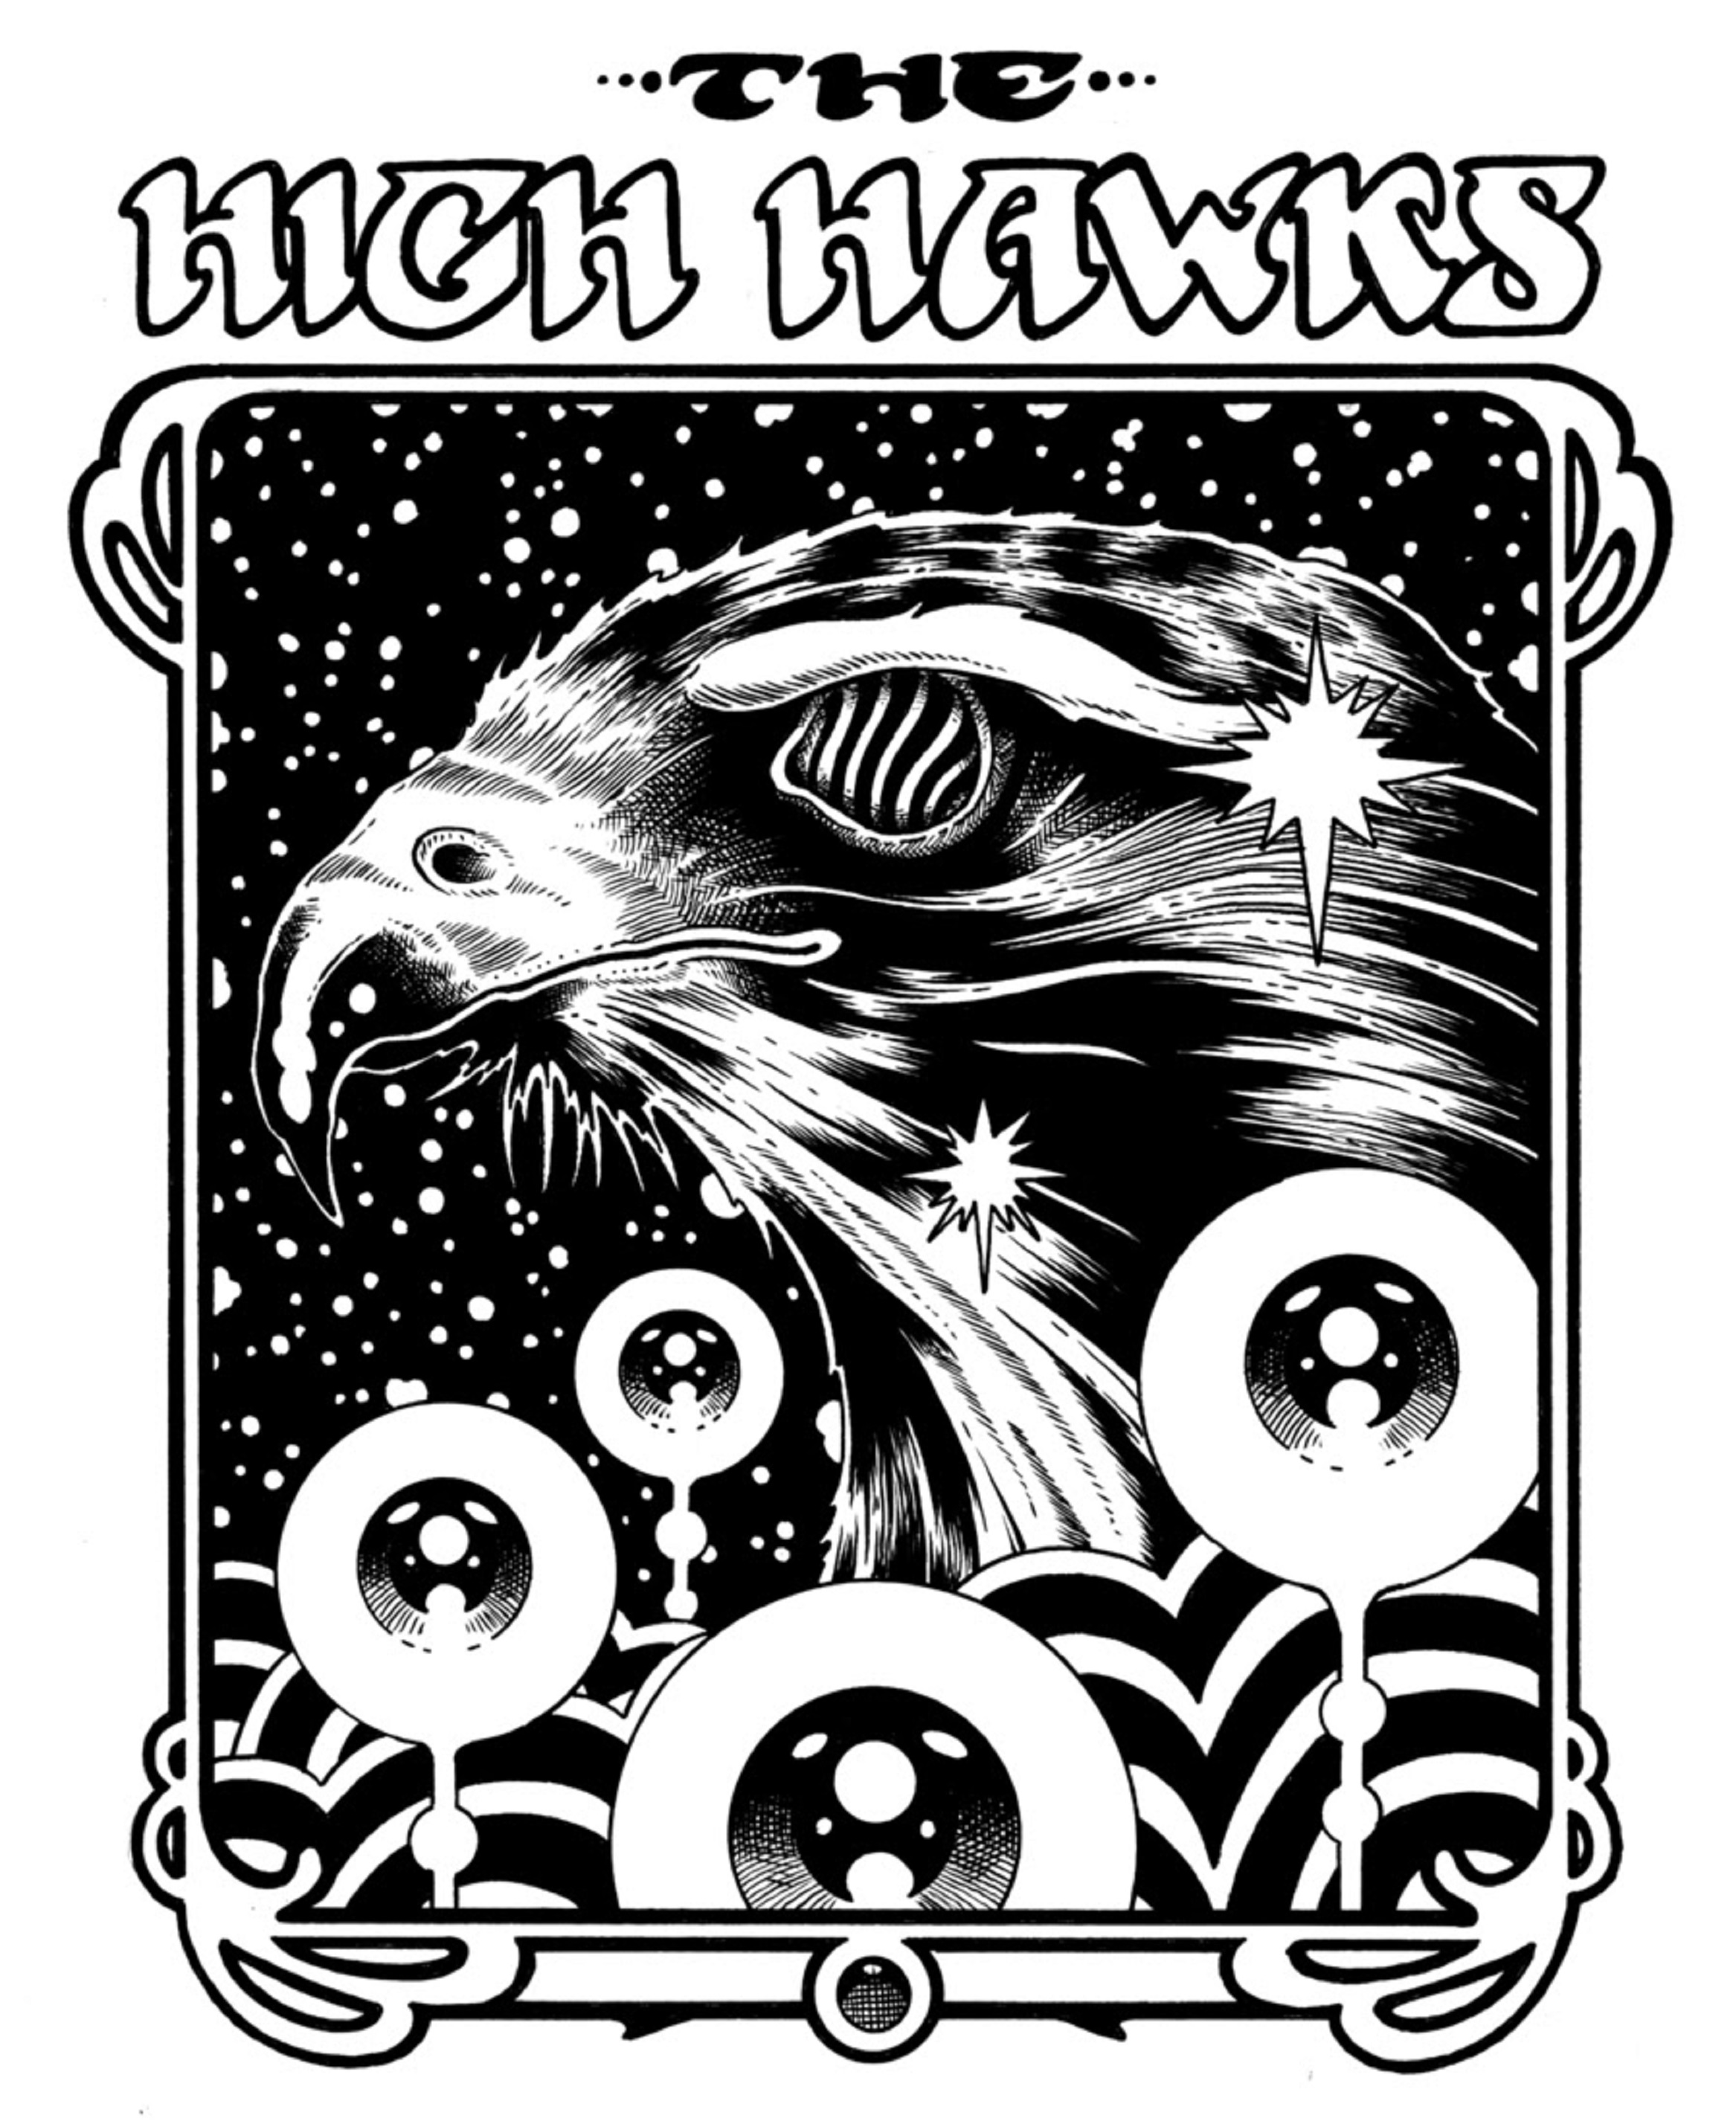 Introducing The High Hawks, Announcing Tour Dates